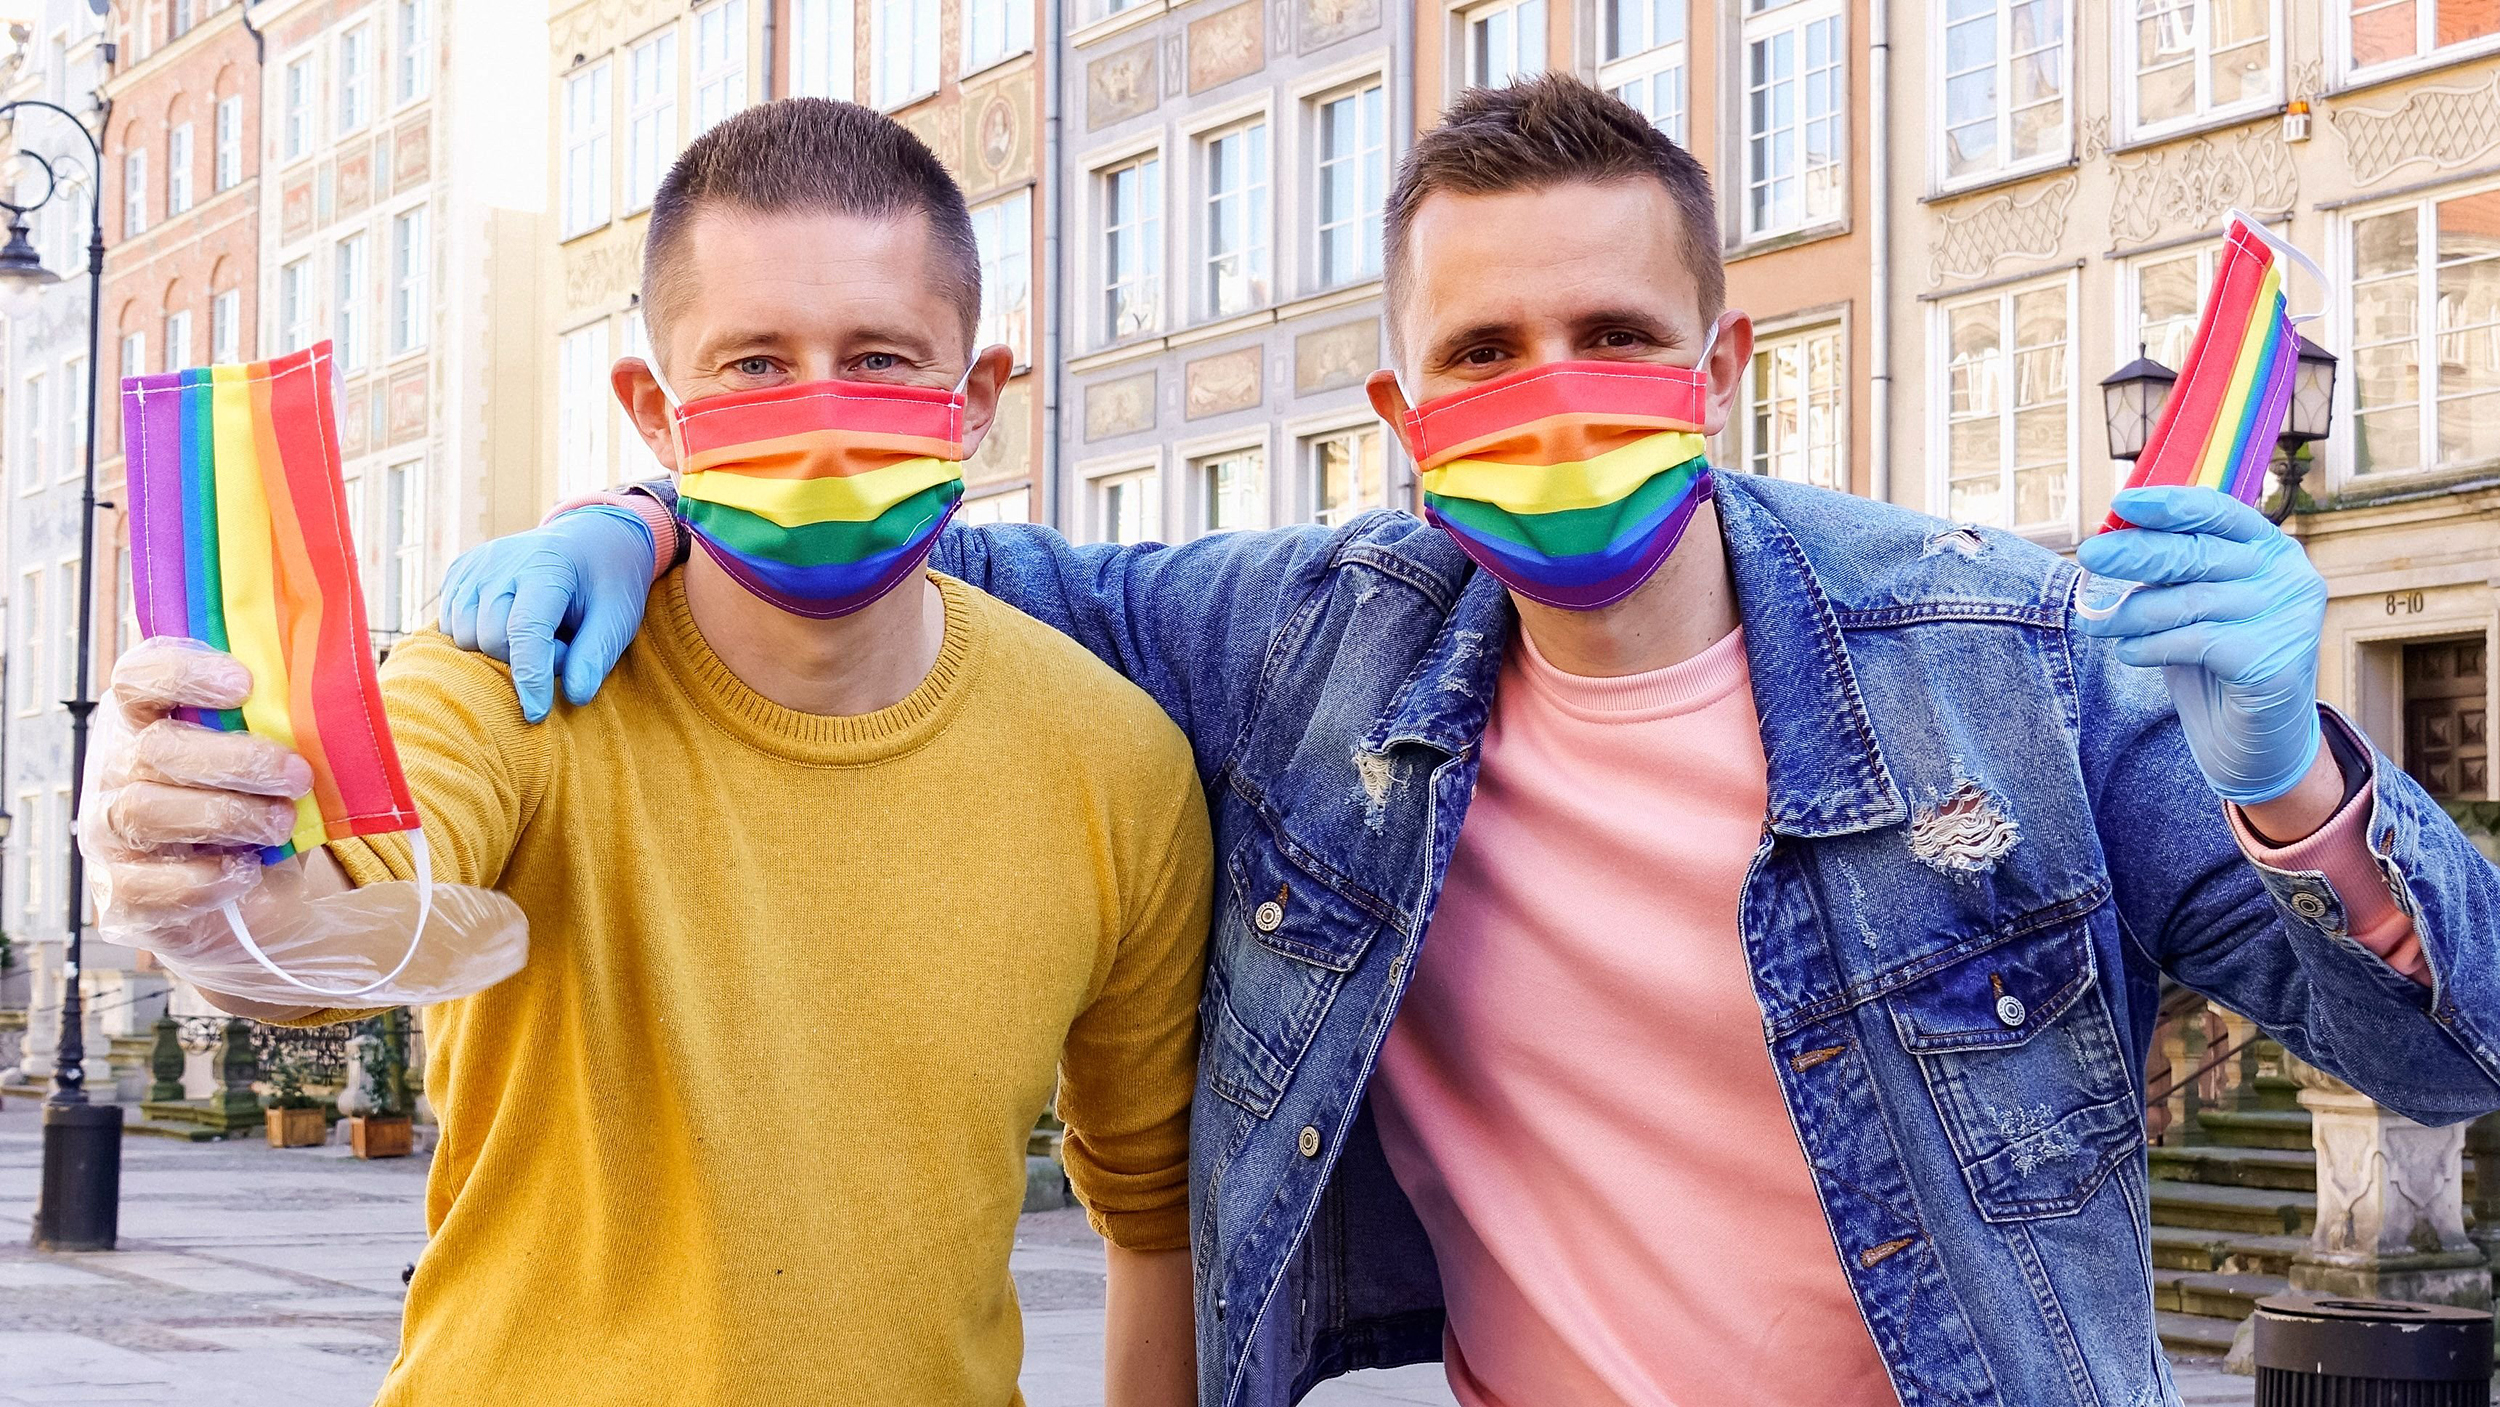 LGBTQ people are fleeing Poland